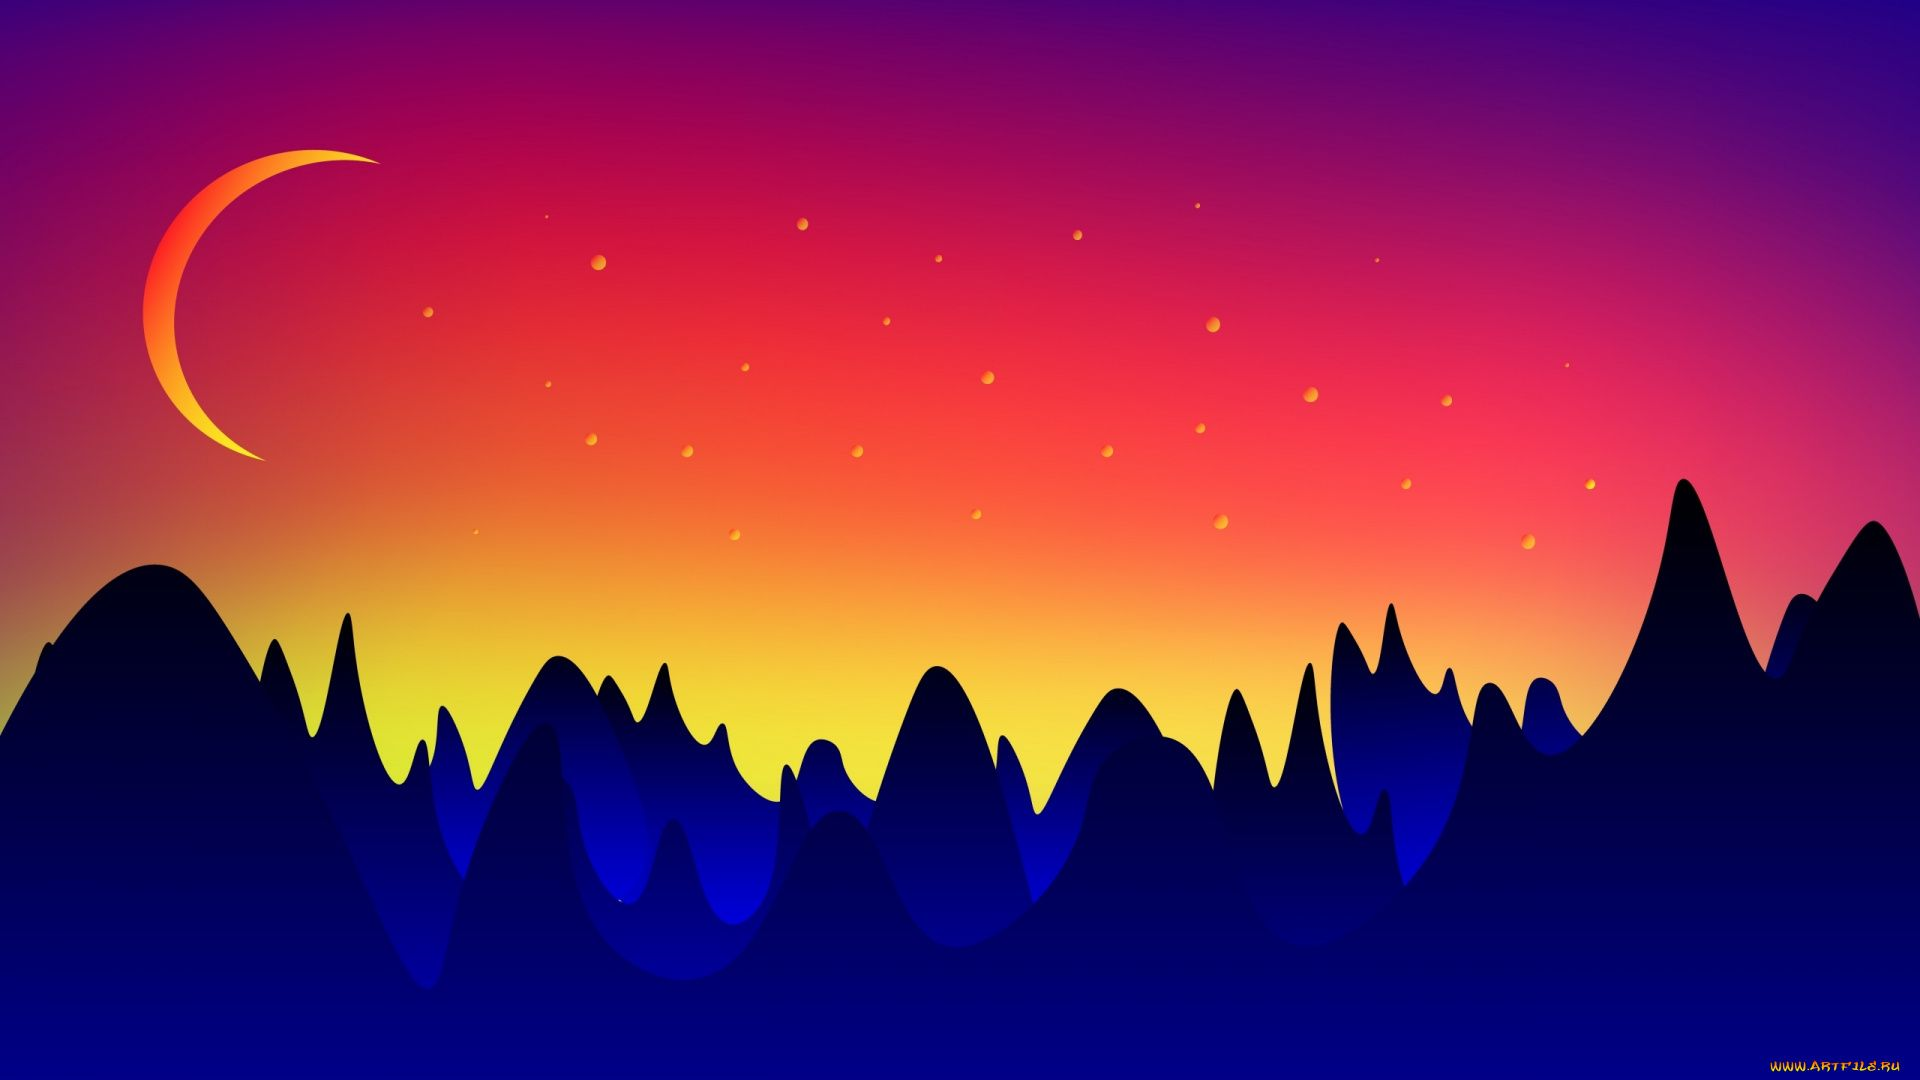 Free Mountain Vector wallpaper for pc